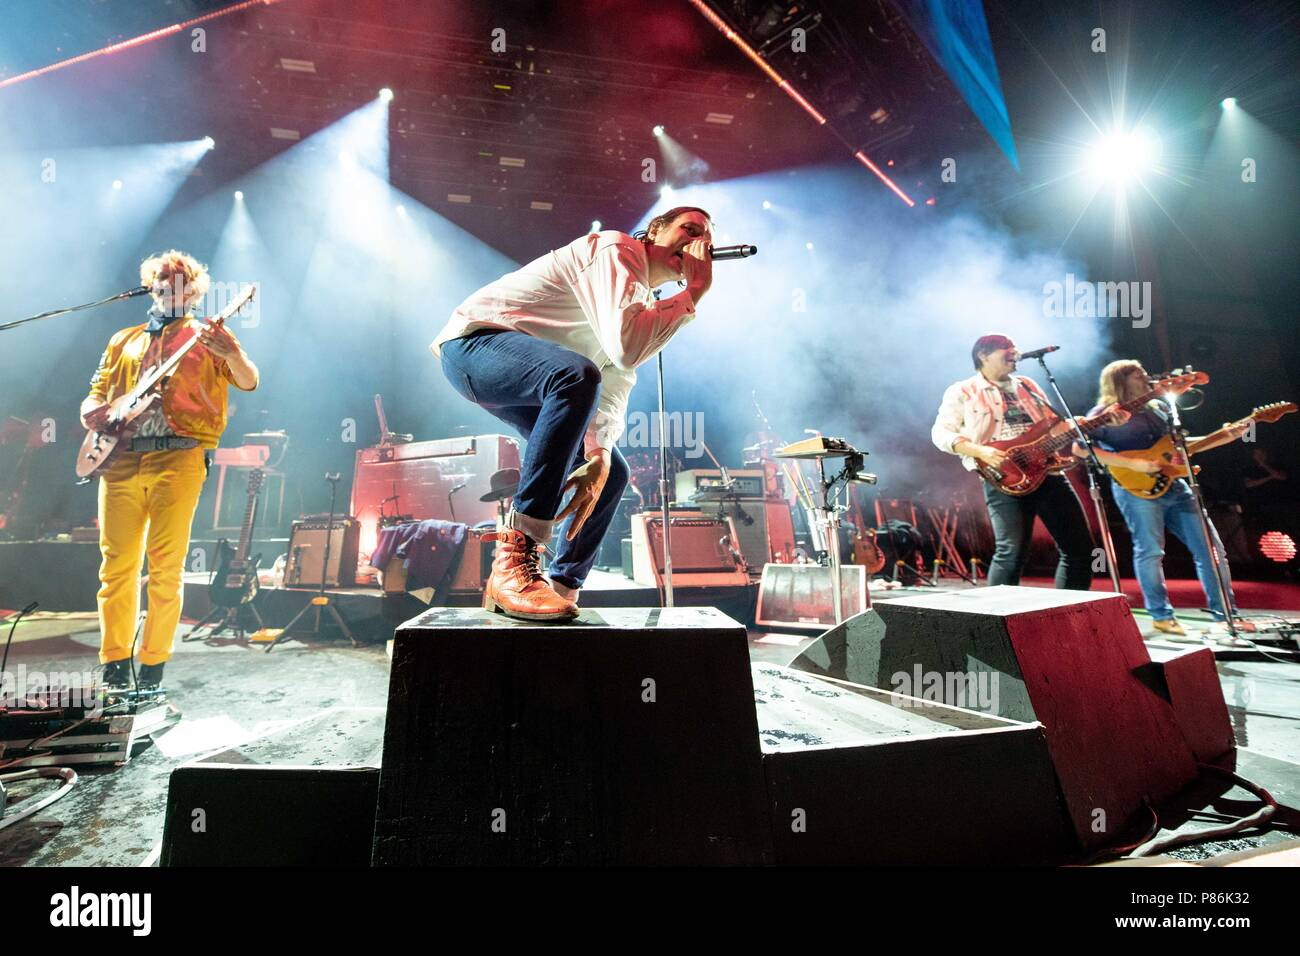 Milwaukee, Wisconsin, USA. 8th July, 2018. RICHARD REED PARRY, WIN BUTLER, WILLIAM BUTLER and TIM KINGSBURY of Arcade Fire during Summerfest Music Festival at Henry Maier Festival Park in Milwaukee, Wisconsin Credit: Daniel DeSlover/ZUMA Wire/Alamy Live News - Stock Image